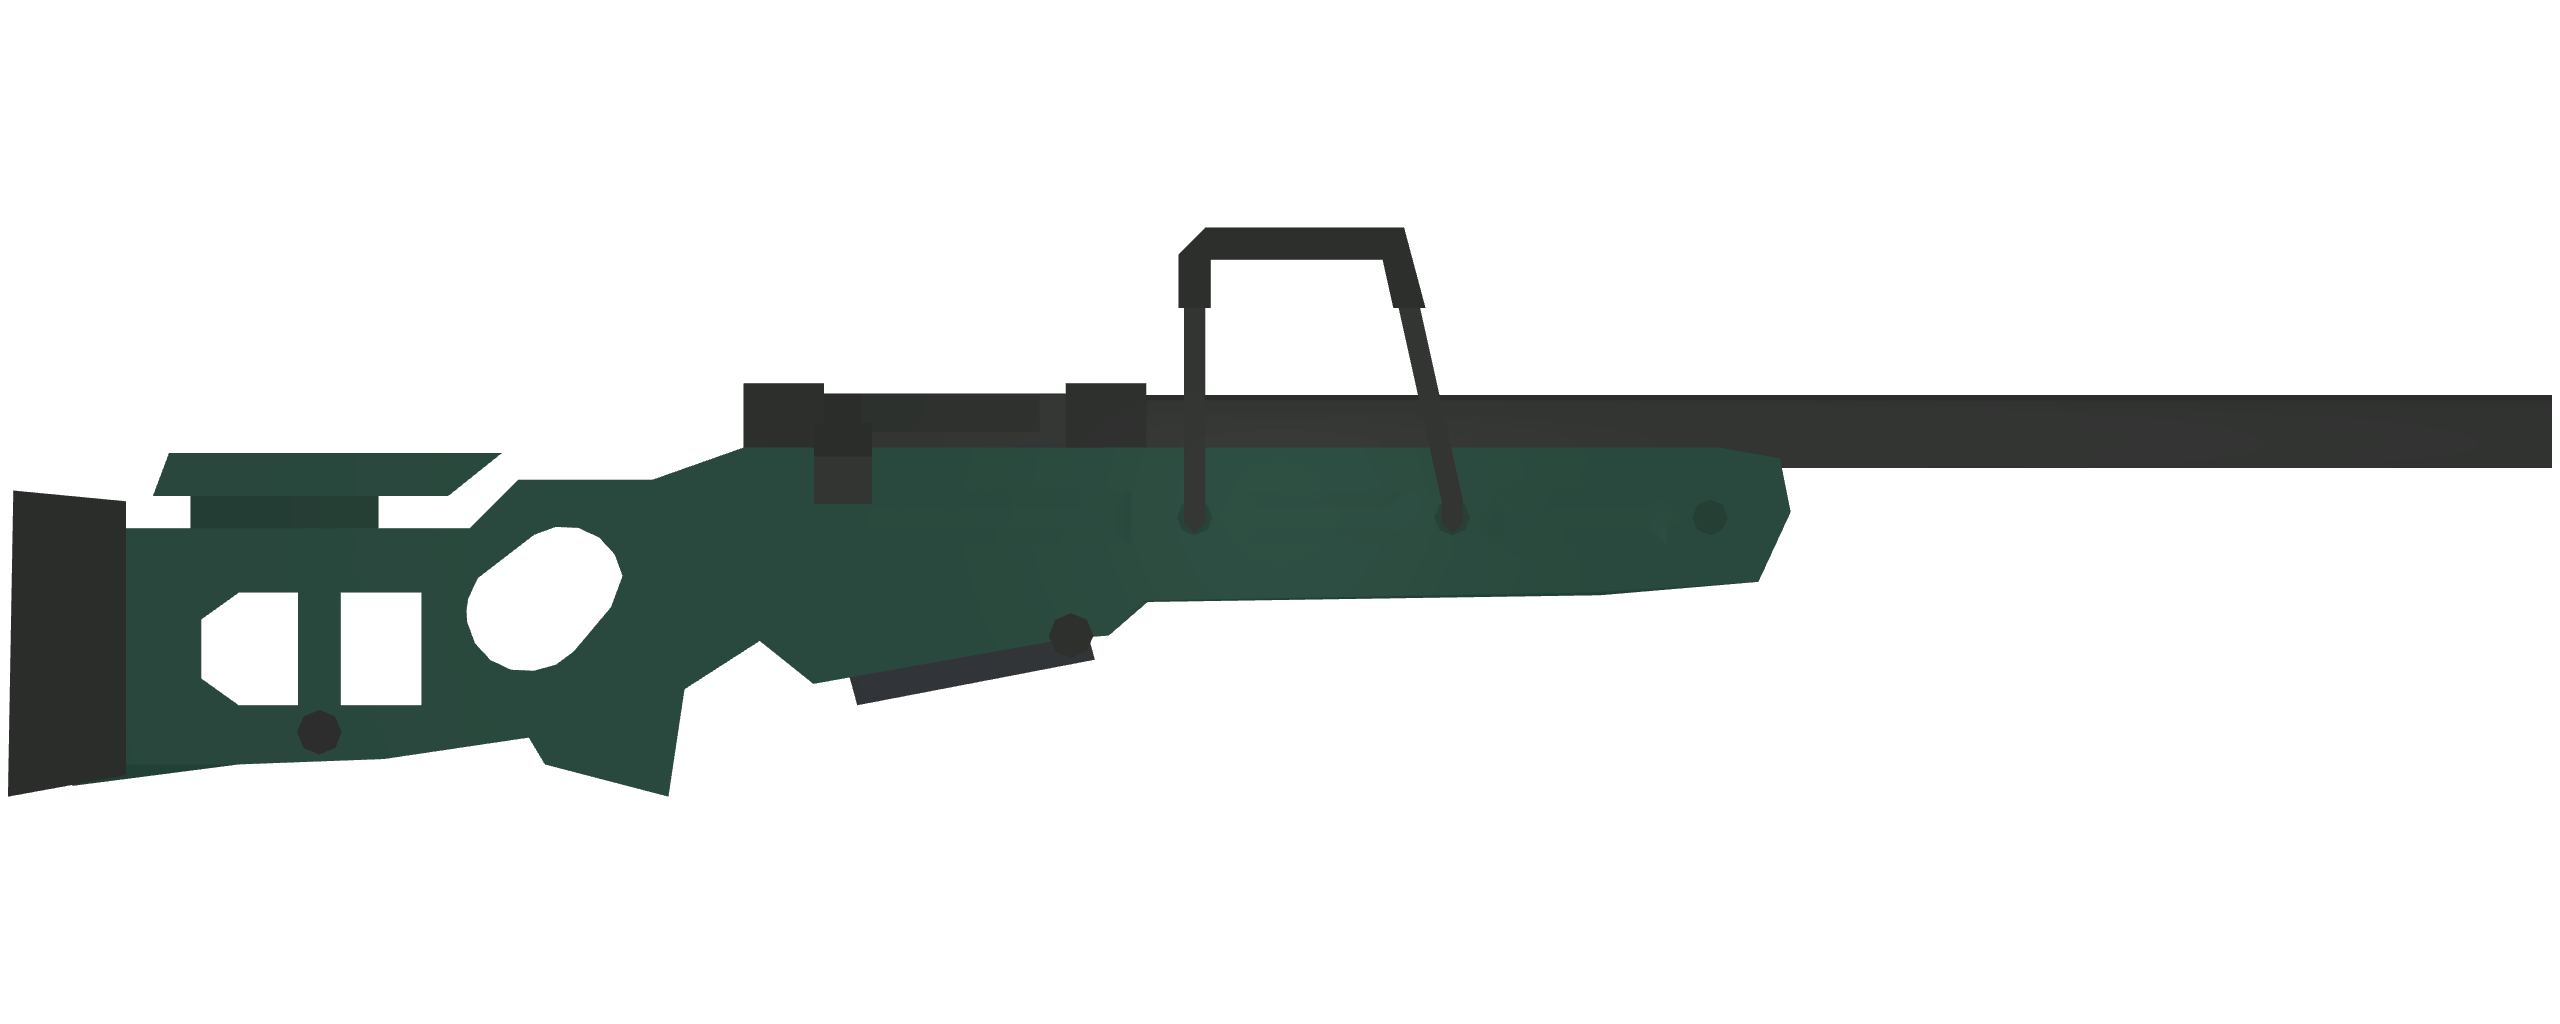 Unturned Uncreated Warfare Mods & All ID List + Attachments - Russian Weapons - 61AAD56